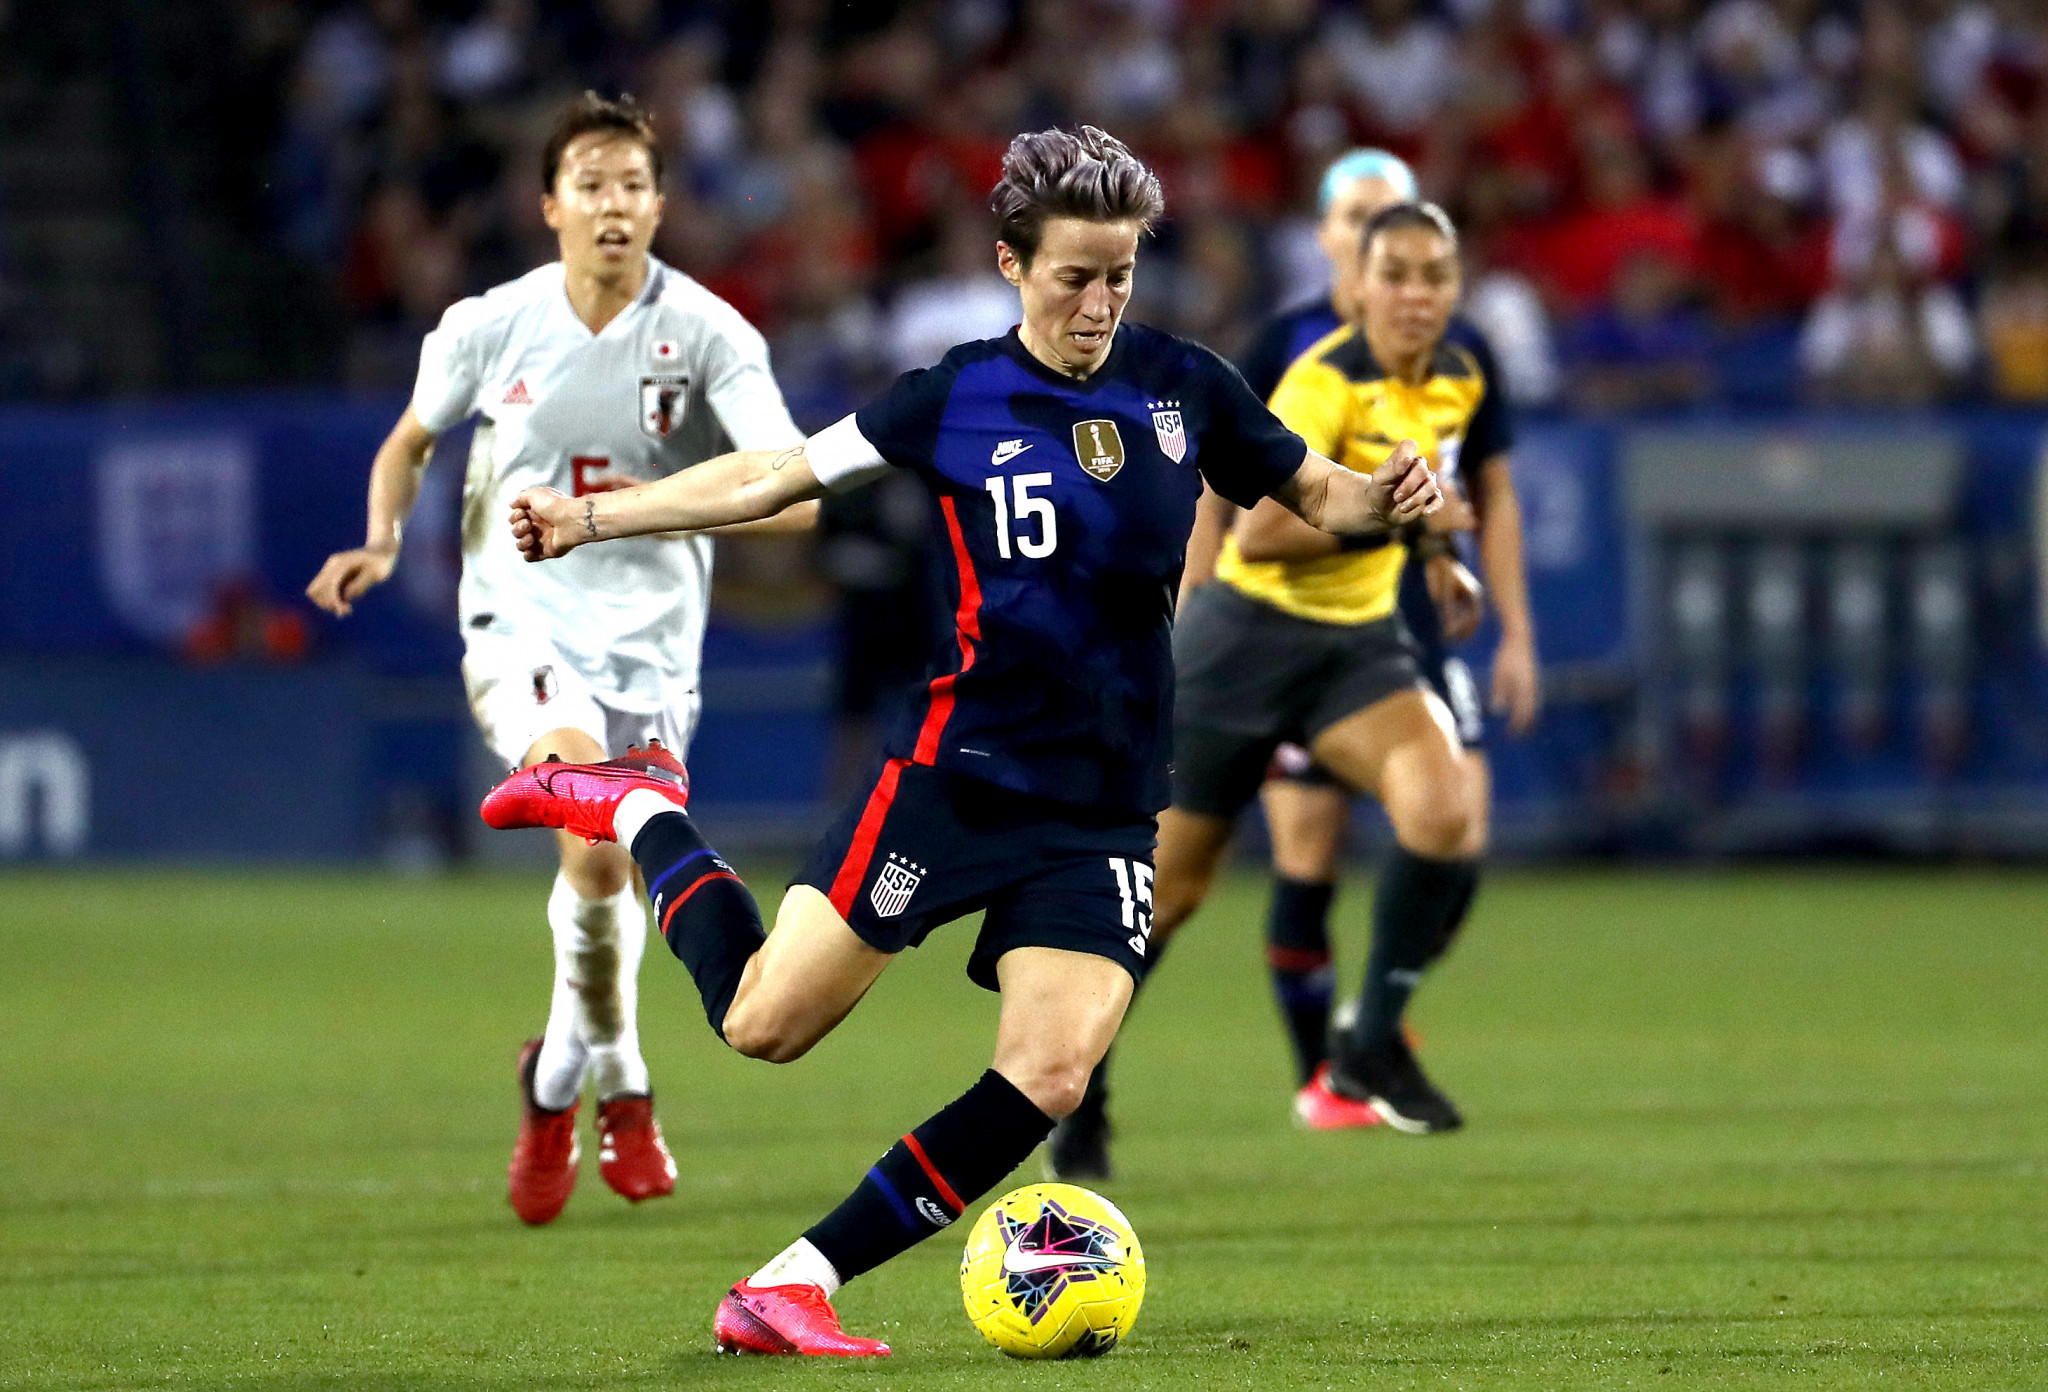 Rapinoe expresses doubts over rescheduled Olympics due to coronavirus